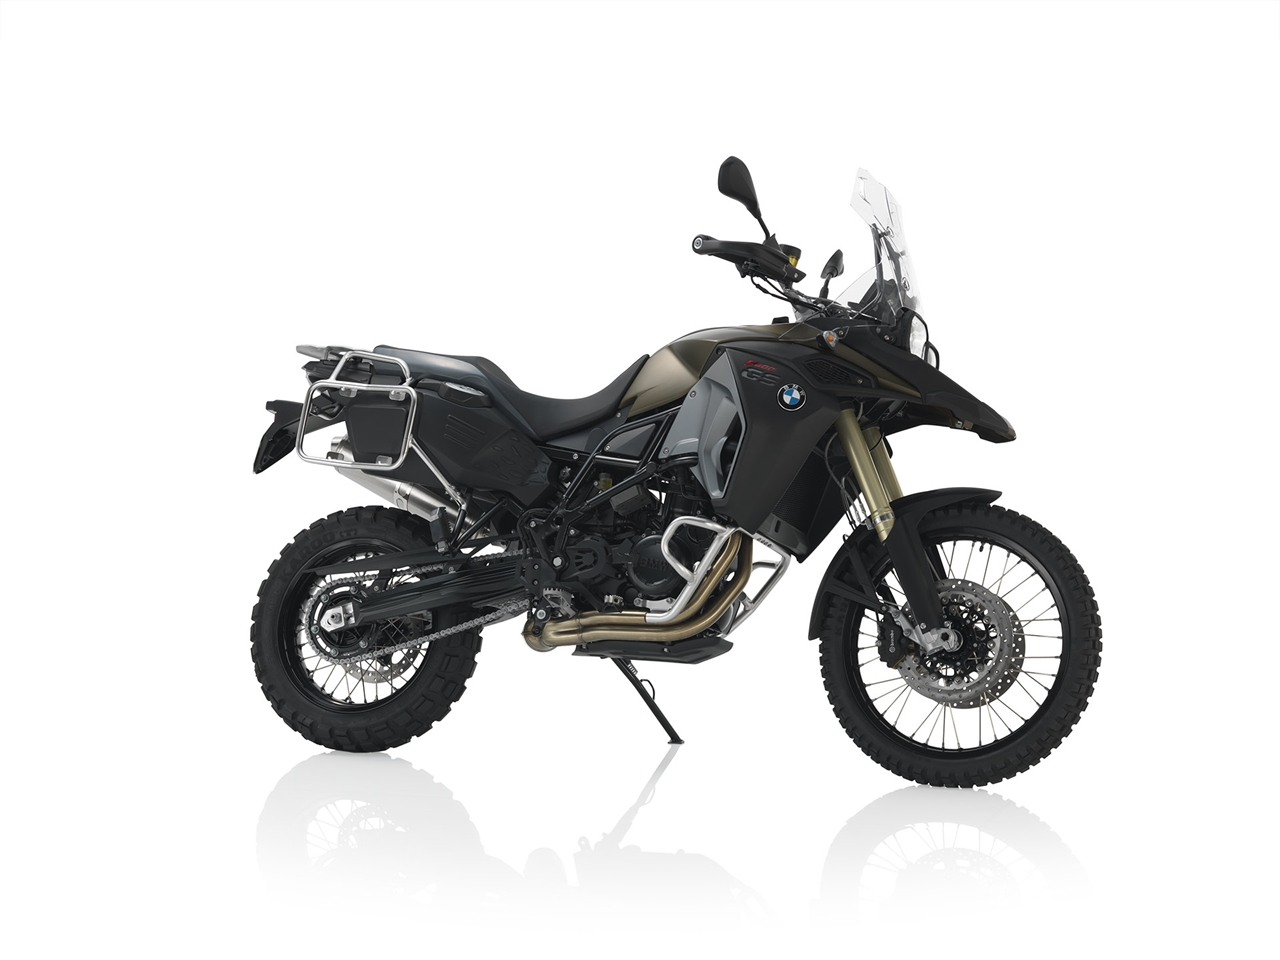 Picture for category BMW F800GS Adventure (2013-12016)